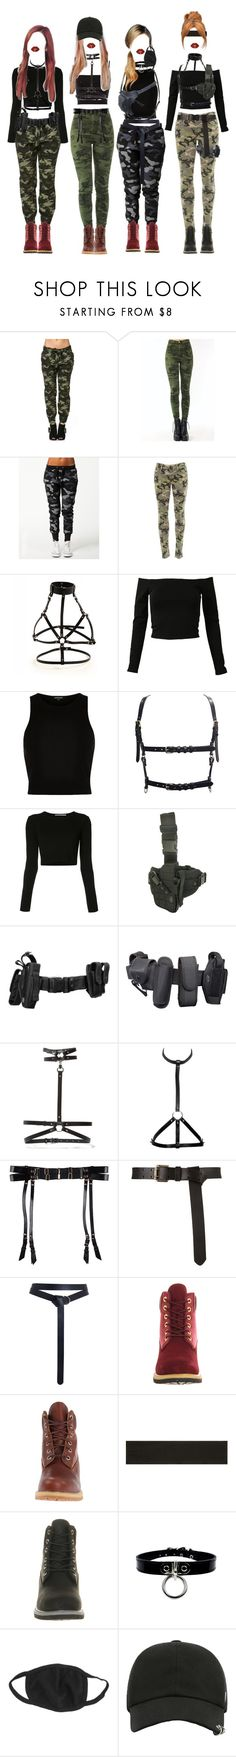 """CAPRICORN _ POWER"" by xxeucliffexx ❤ liked on Polyvore featuring Zoe Karssen, Black Orchid, Anita Nemkyova, River Island, Rosetta Getty, Zana Bayne, POLICE, Bordelle, Zimmermann and Timberland"